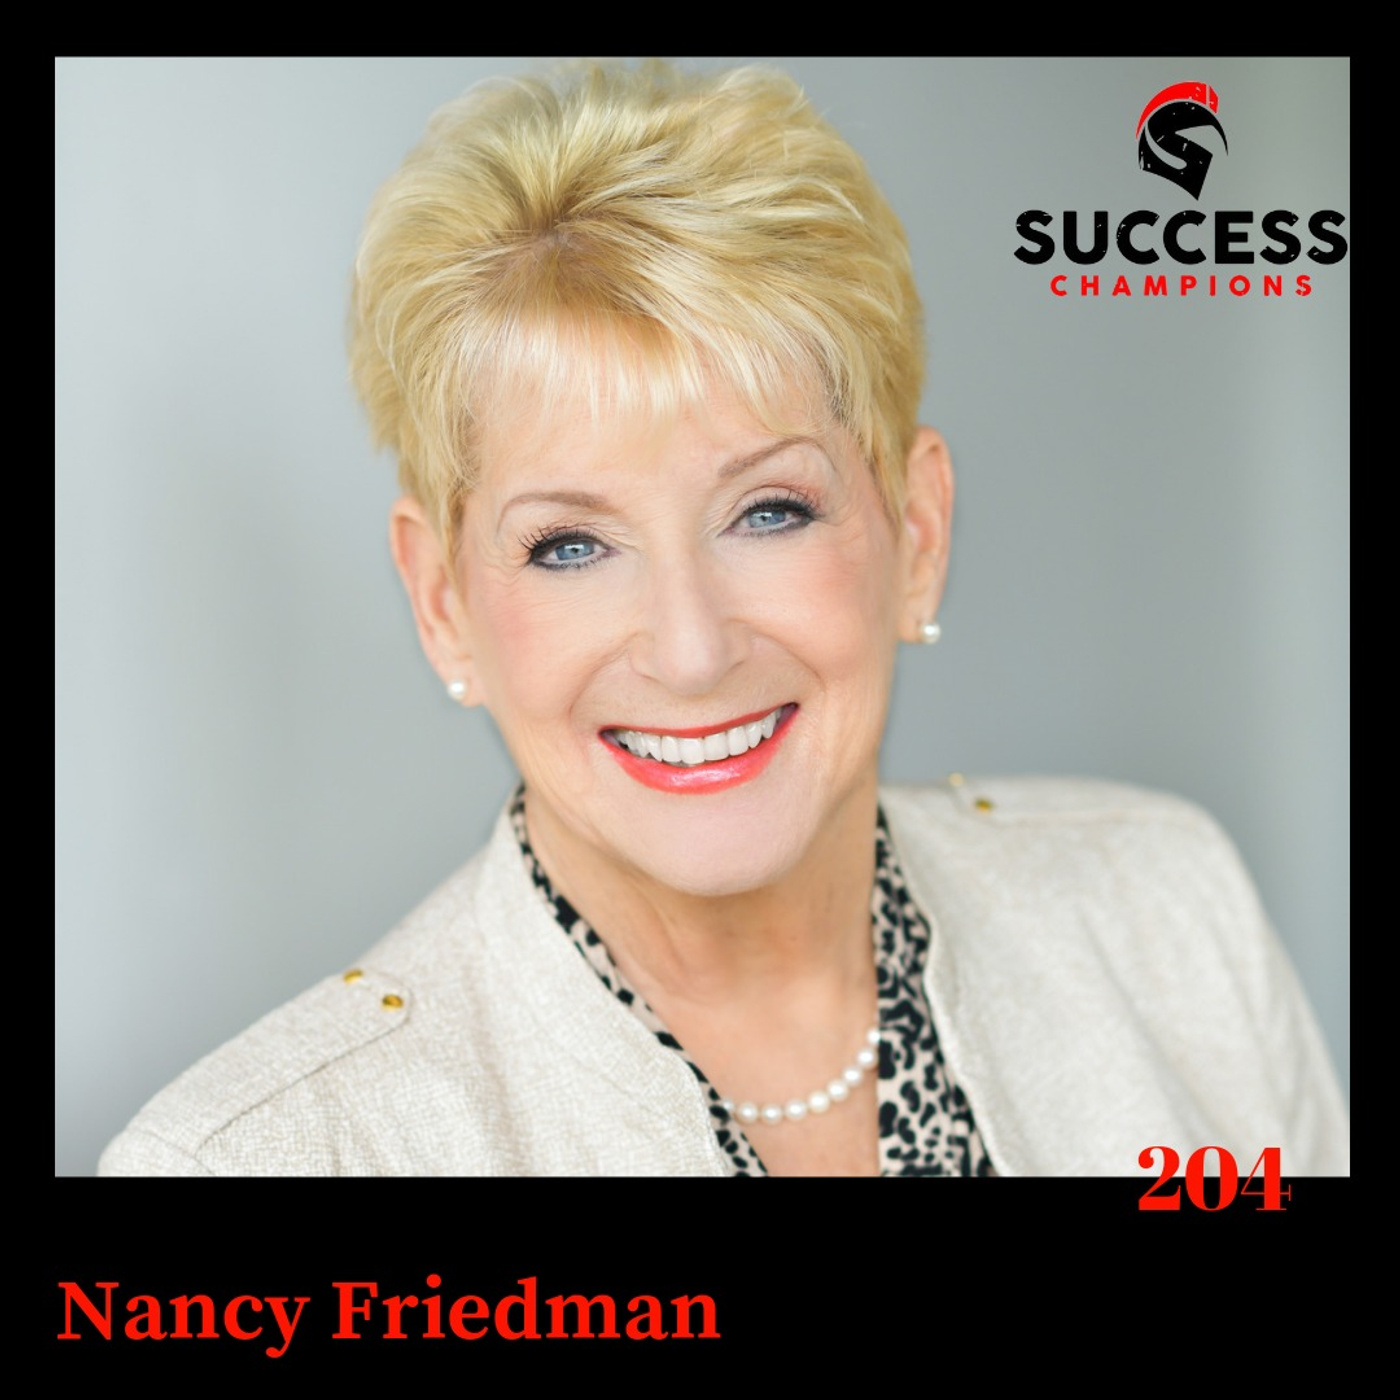 Nancy Friedman Customer Service is the Answer